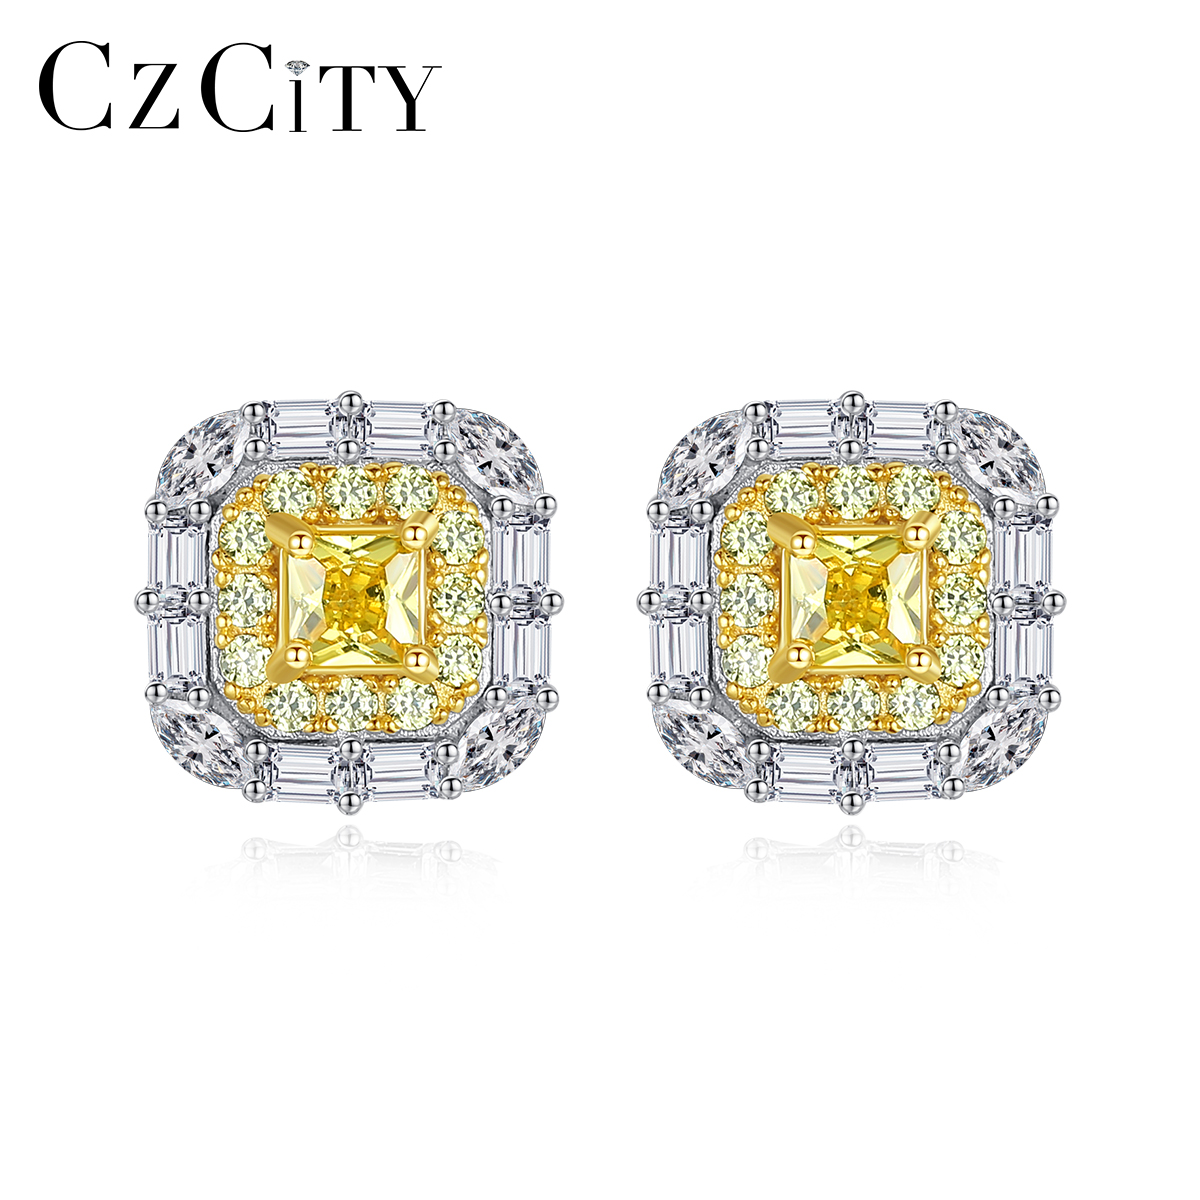 CZCITY Square Topaz Gemstone Stud Earrings For Women Wedding Engagement Fine Jewelry 925 Sterling Silver Anillos Christmas Gifts